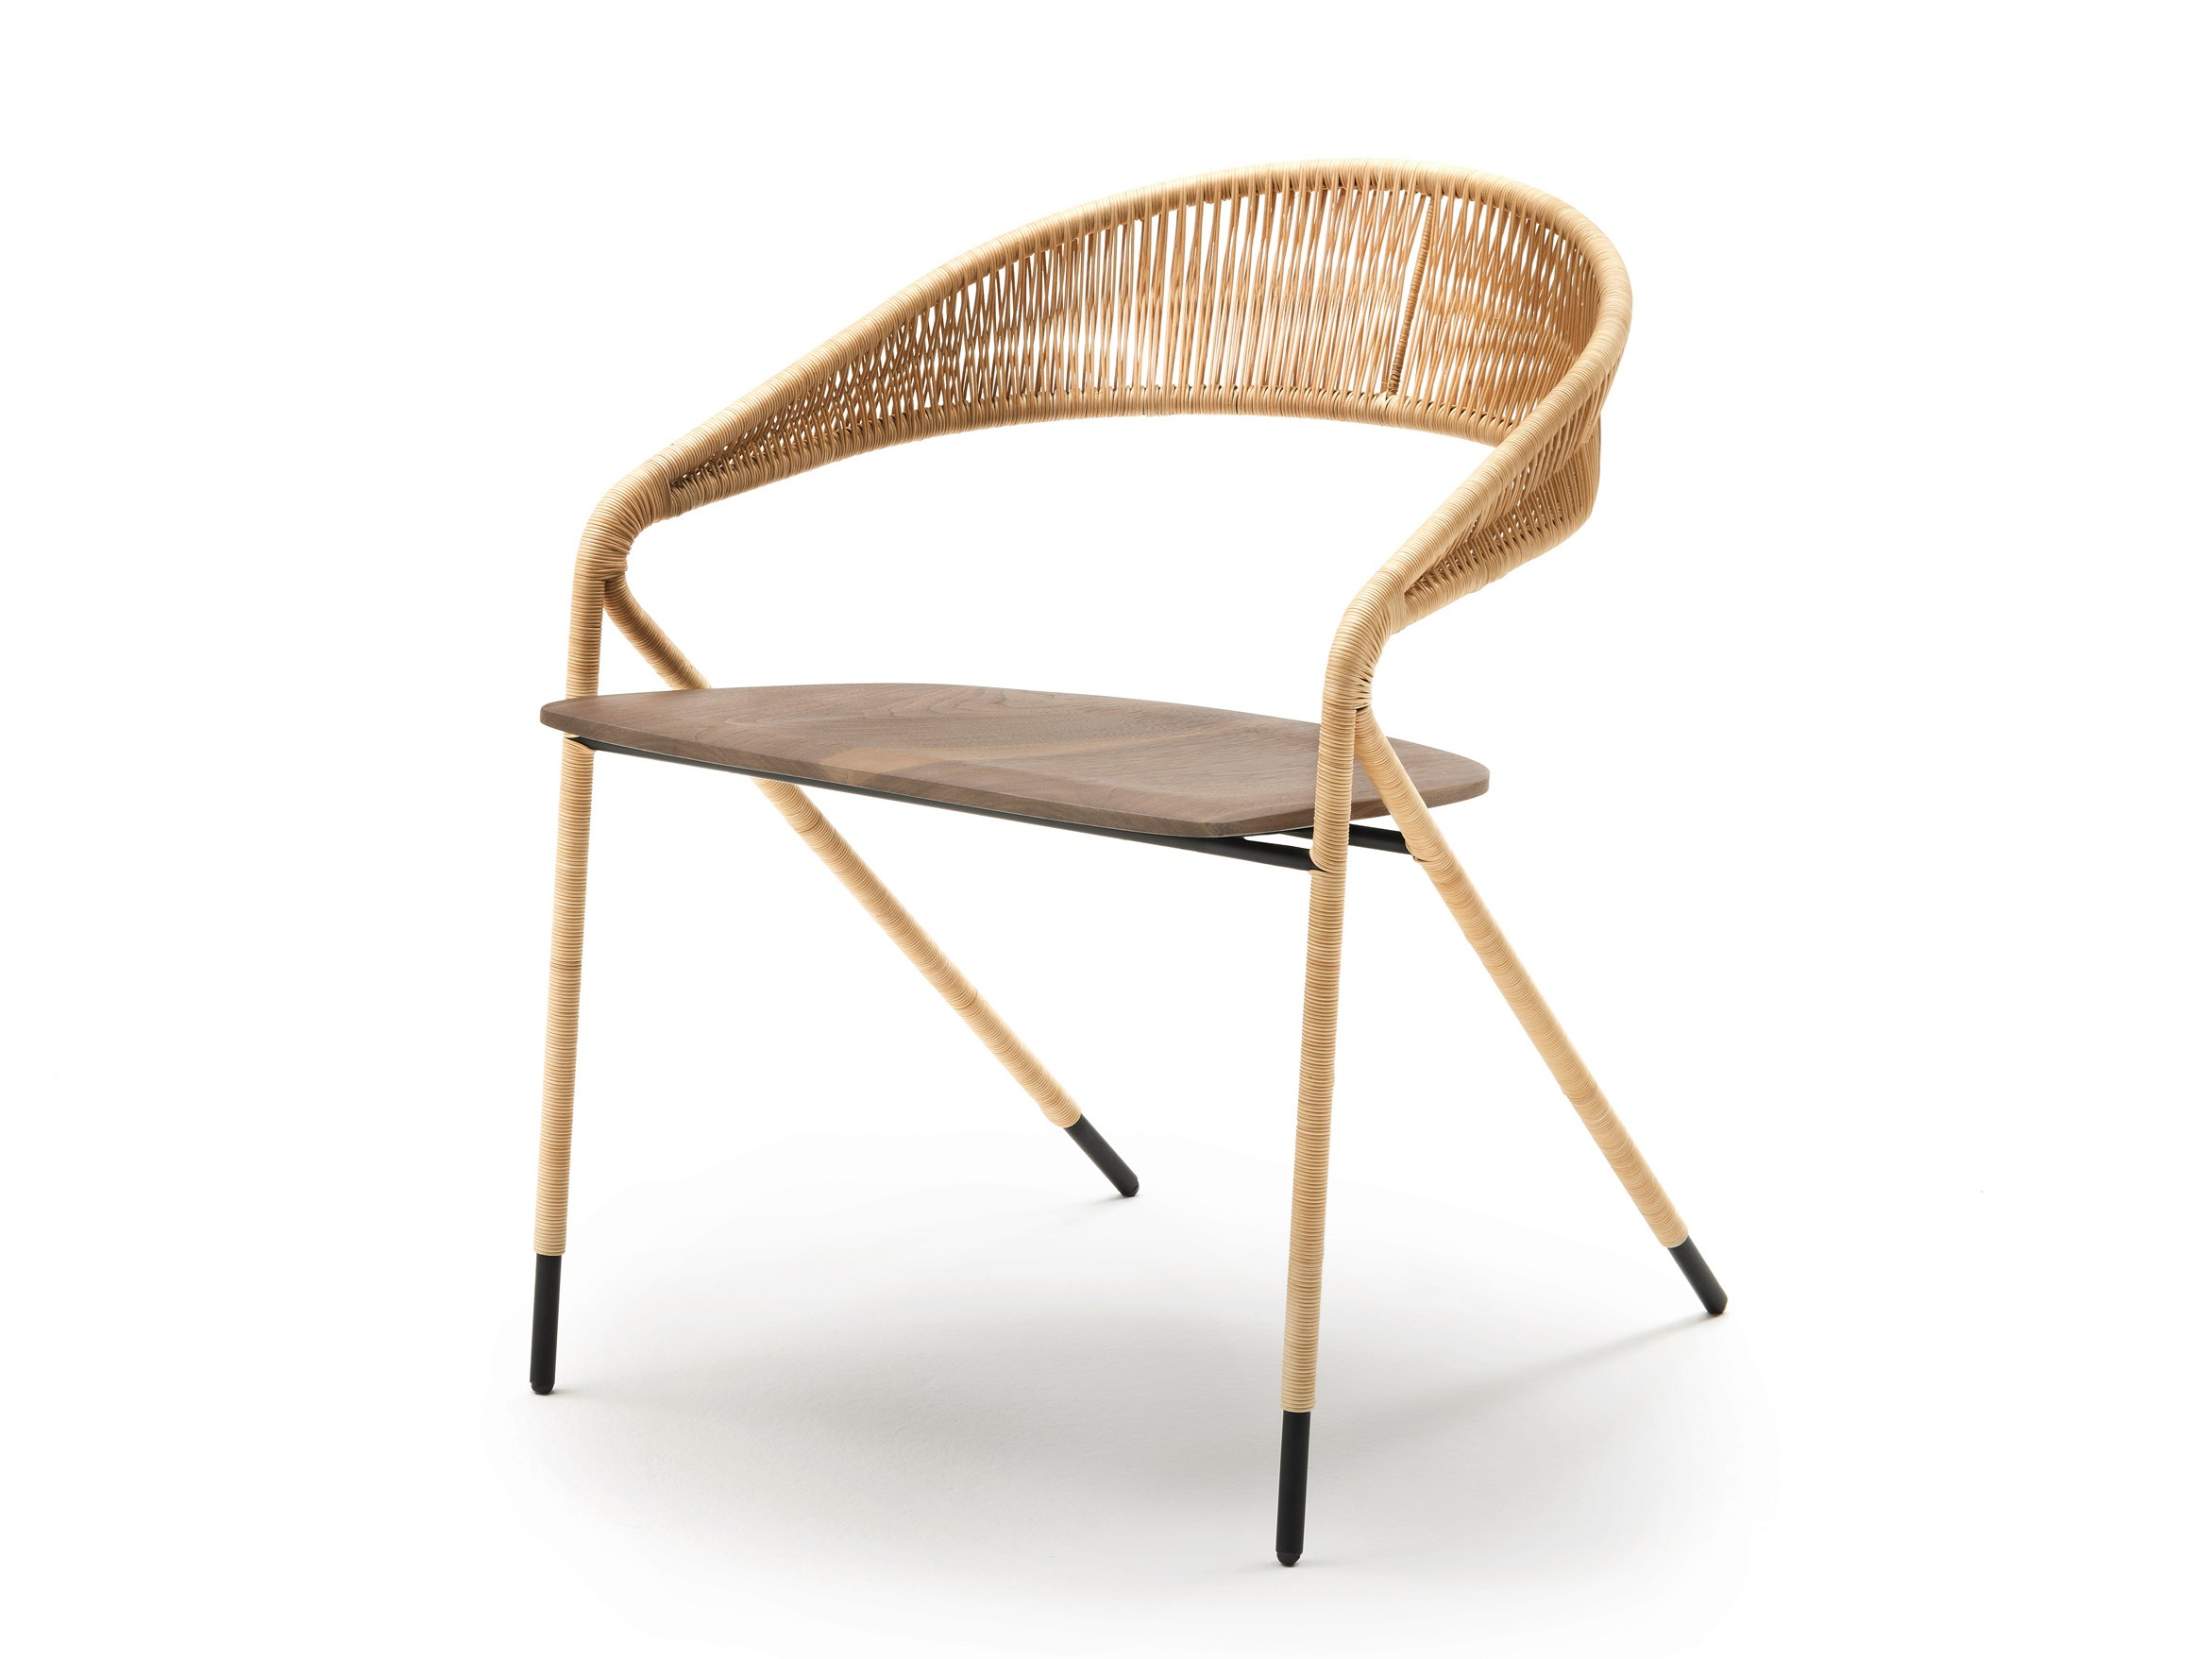 George's Dining Chair by David Lopez Quincoces for Living Divani